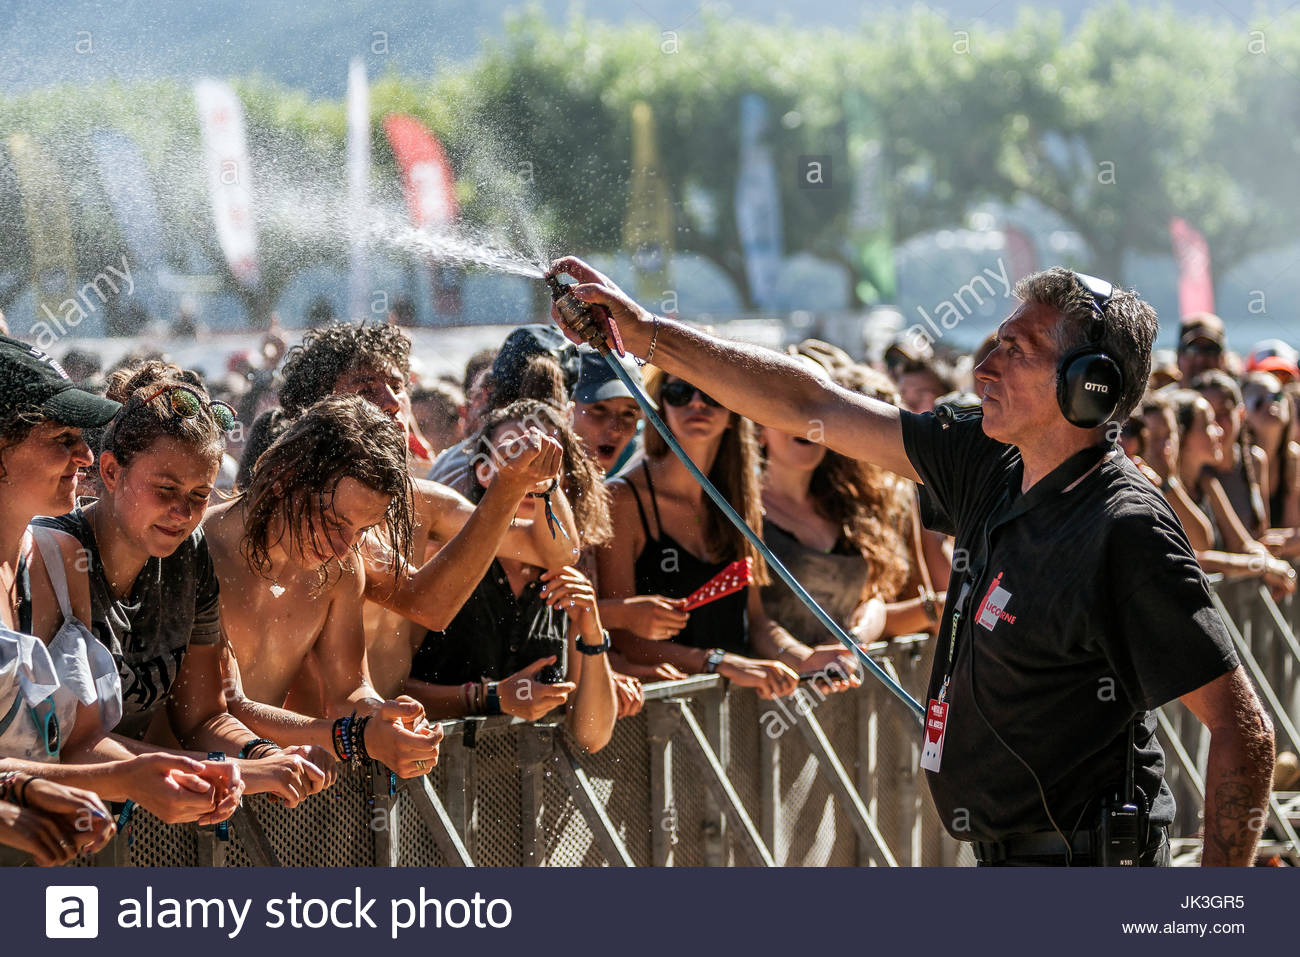 Security cooling the audience at Musilac summer festival - Stock Image